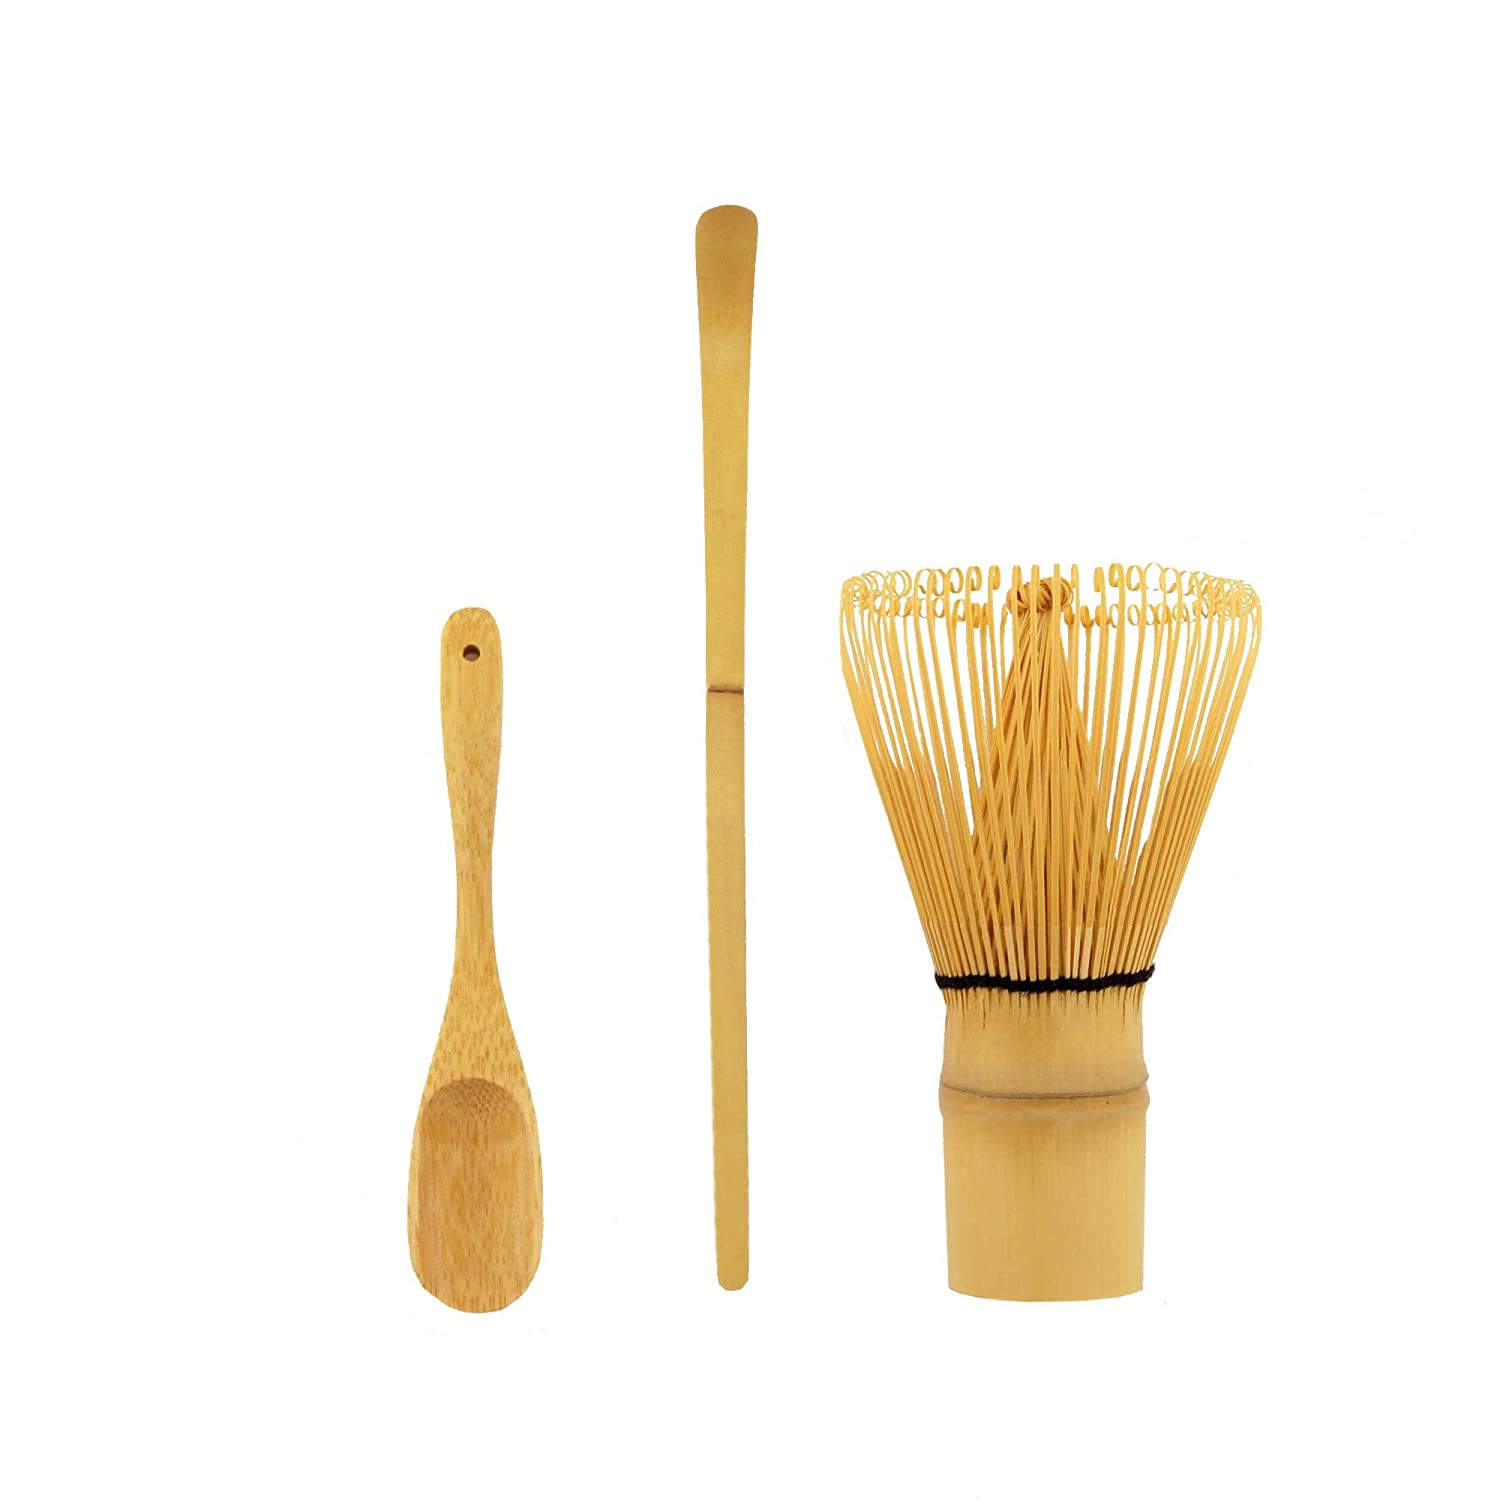 BambooMN Matcha Whisk Set - Black Chasen (Tea Whisk) + Black Chashaku (Hooked Bamboo Scoop) + Black Deep Scoop - 1 Set 6955114960105a